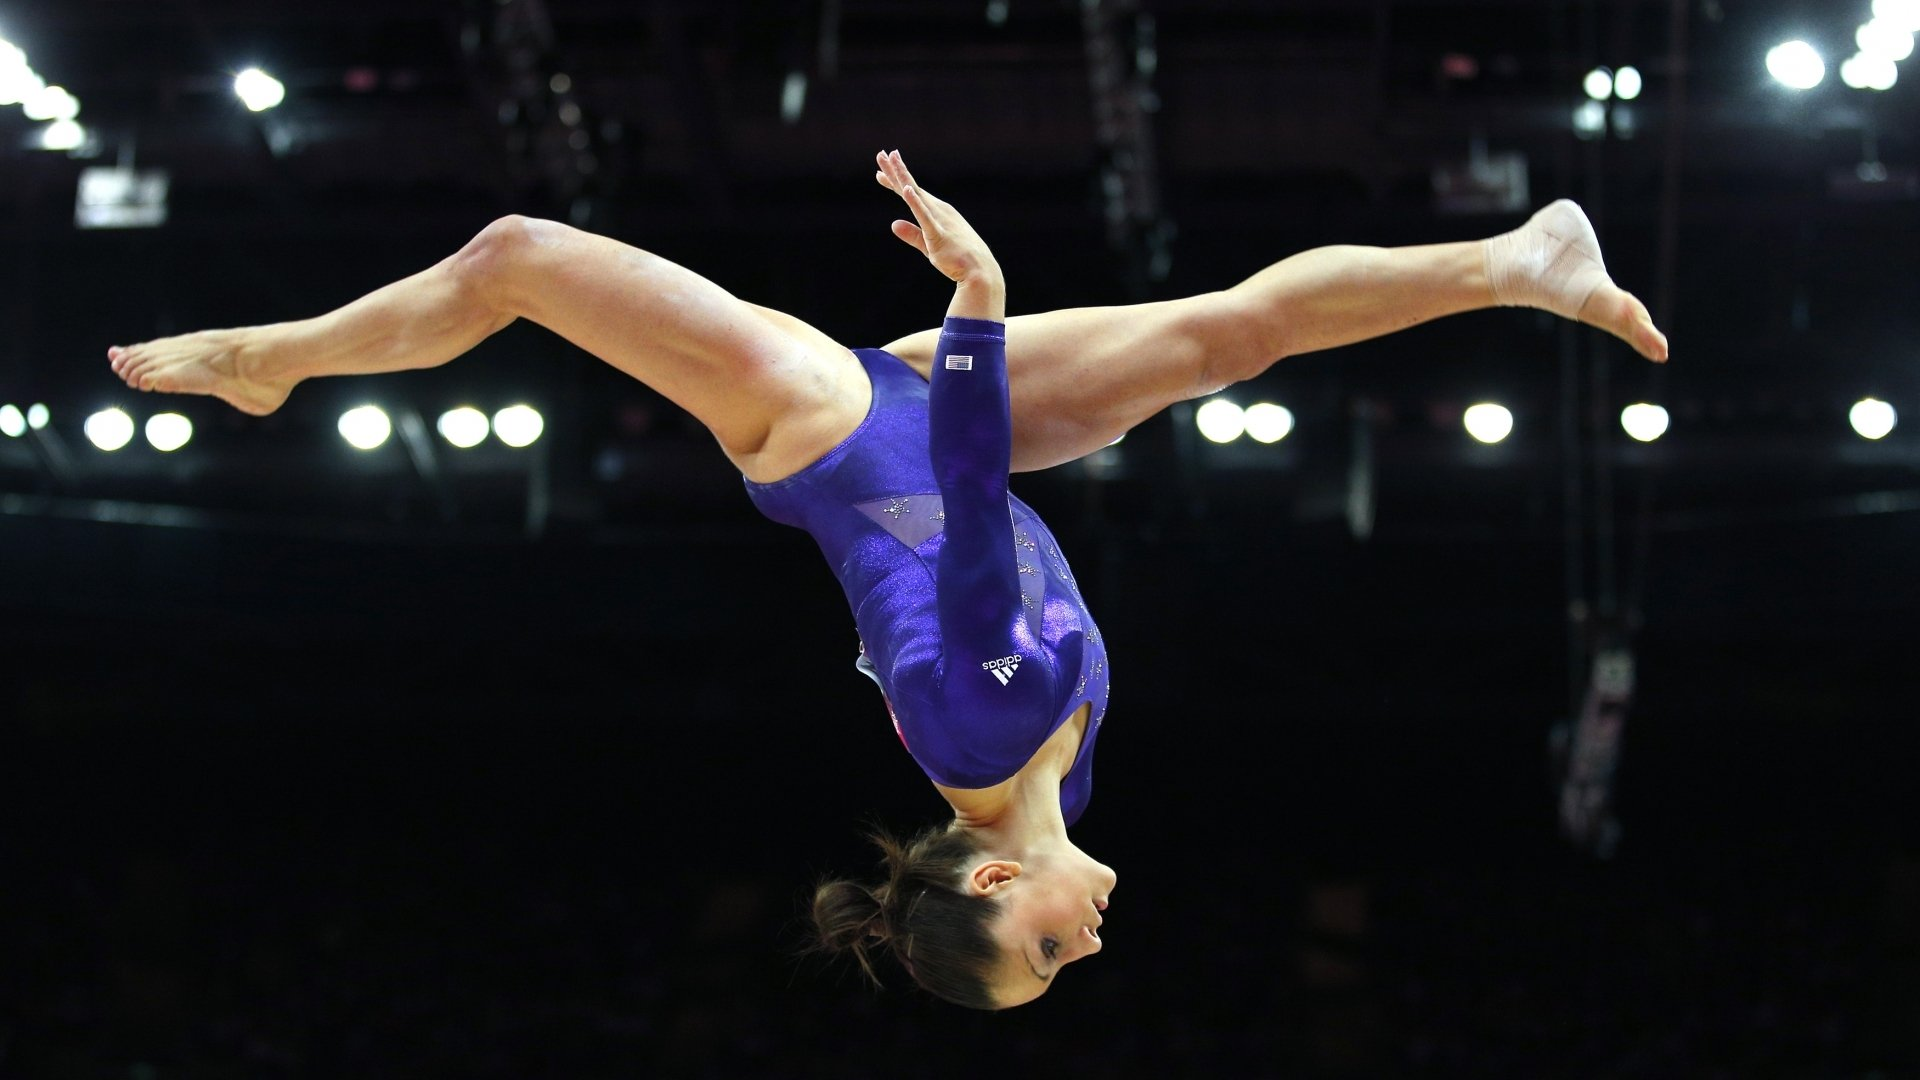 Gymnastics Backgrounds Download